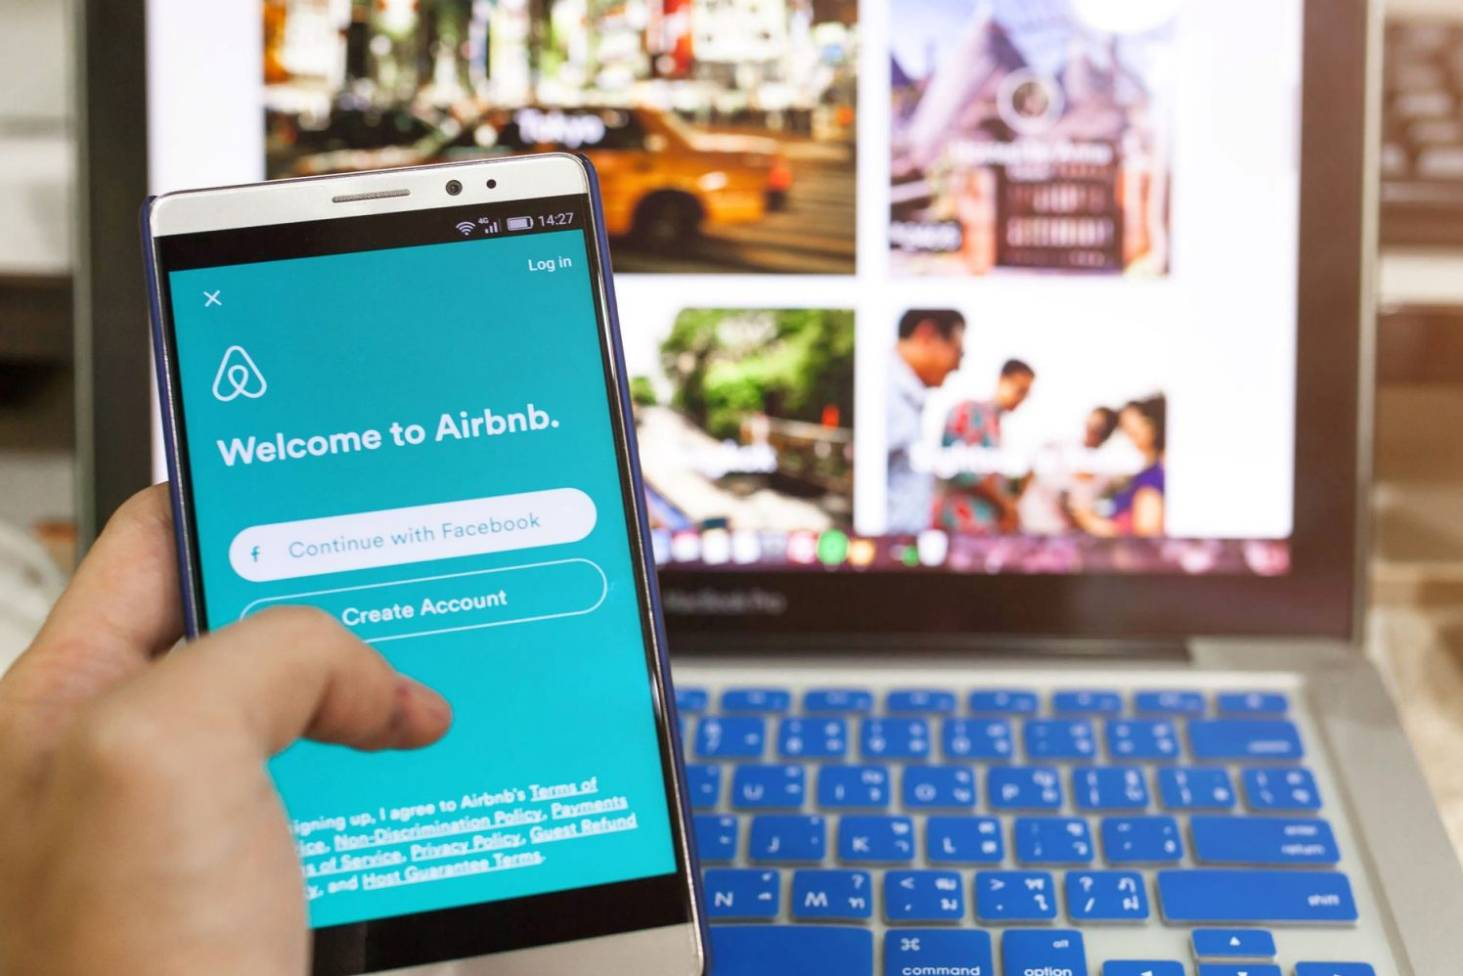 The A to Z guide to Airbnb: How it works and what should you